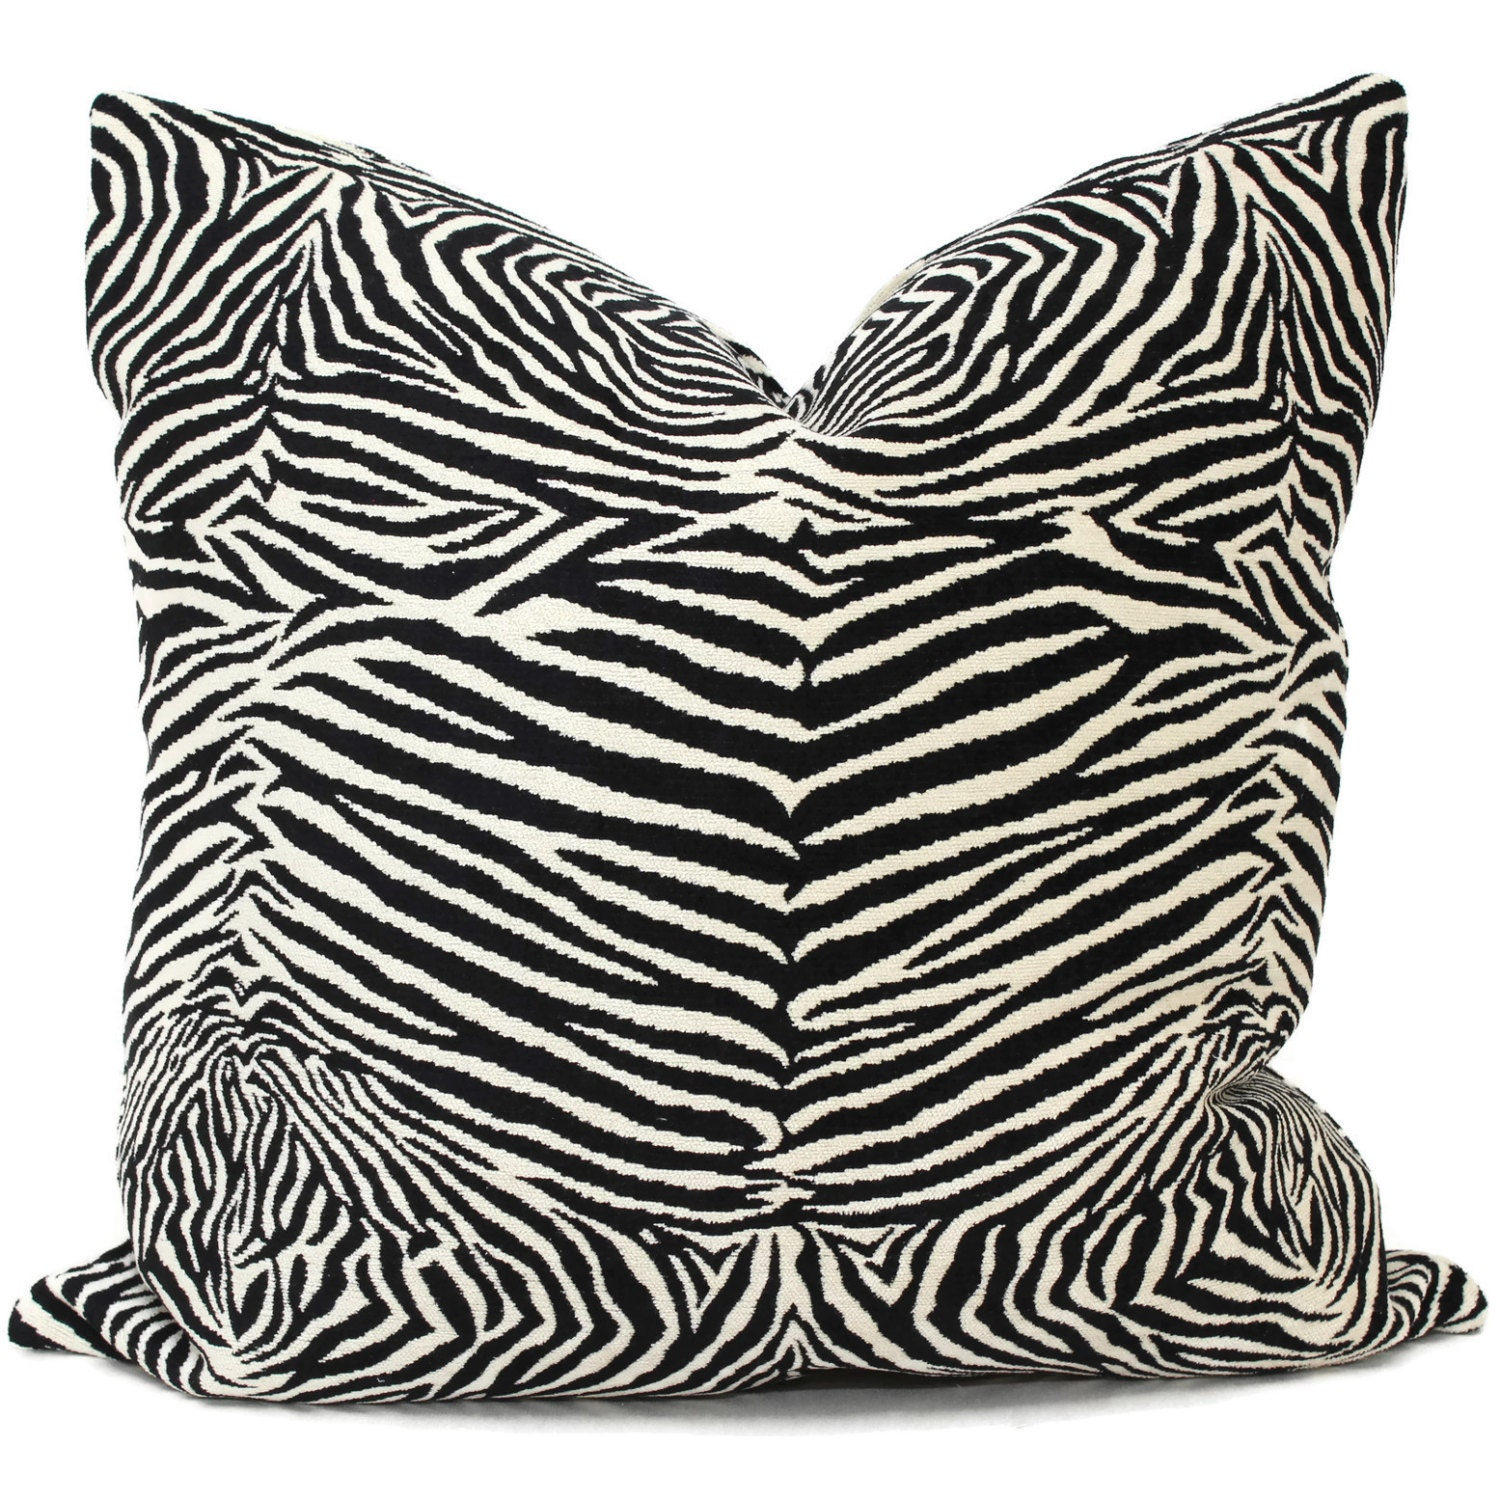 Zebra Decorative Pillows : Decorative Zebra Pillow Cover Square Eurosham 20x20 Accent